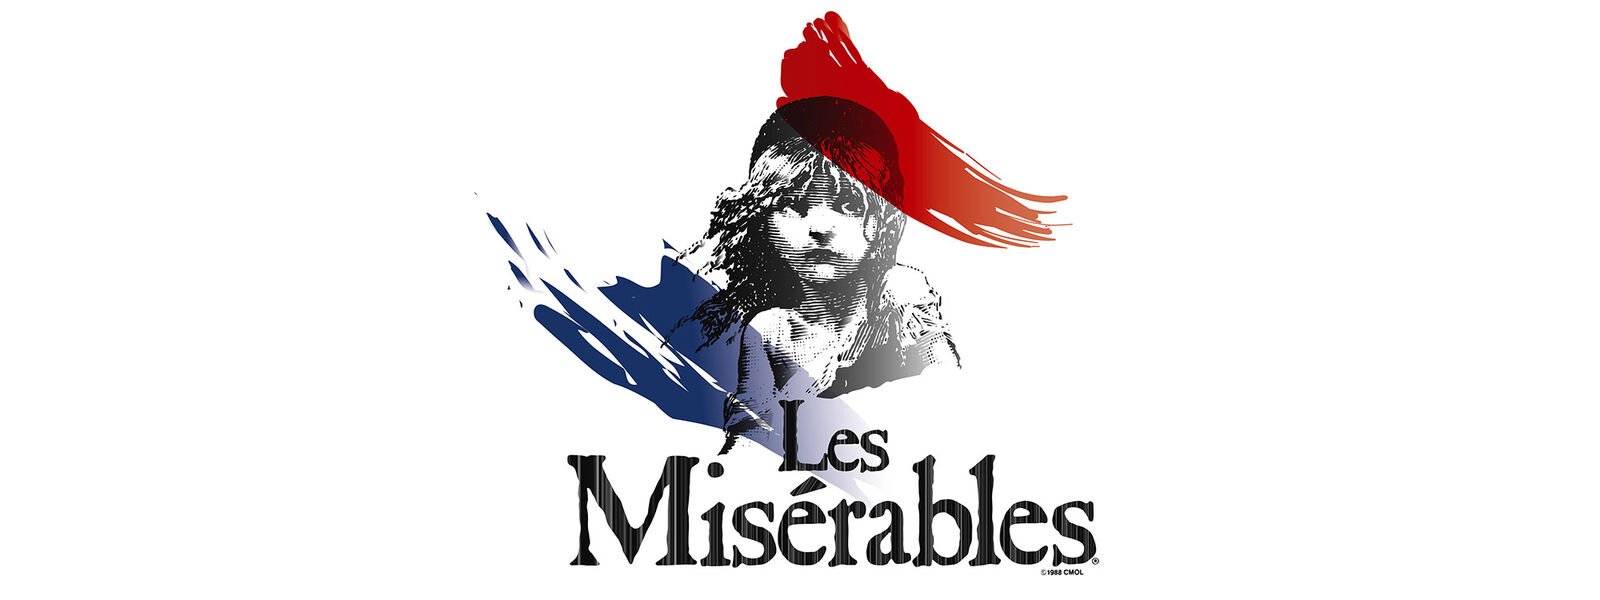 Les Miserables McAllen